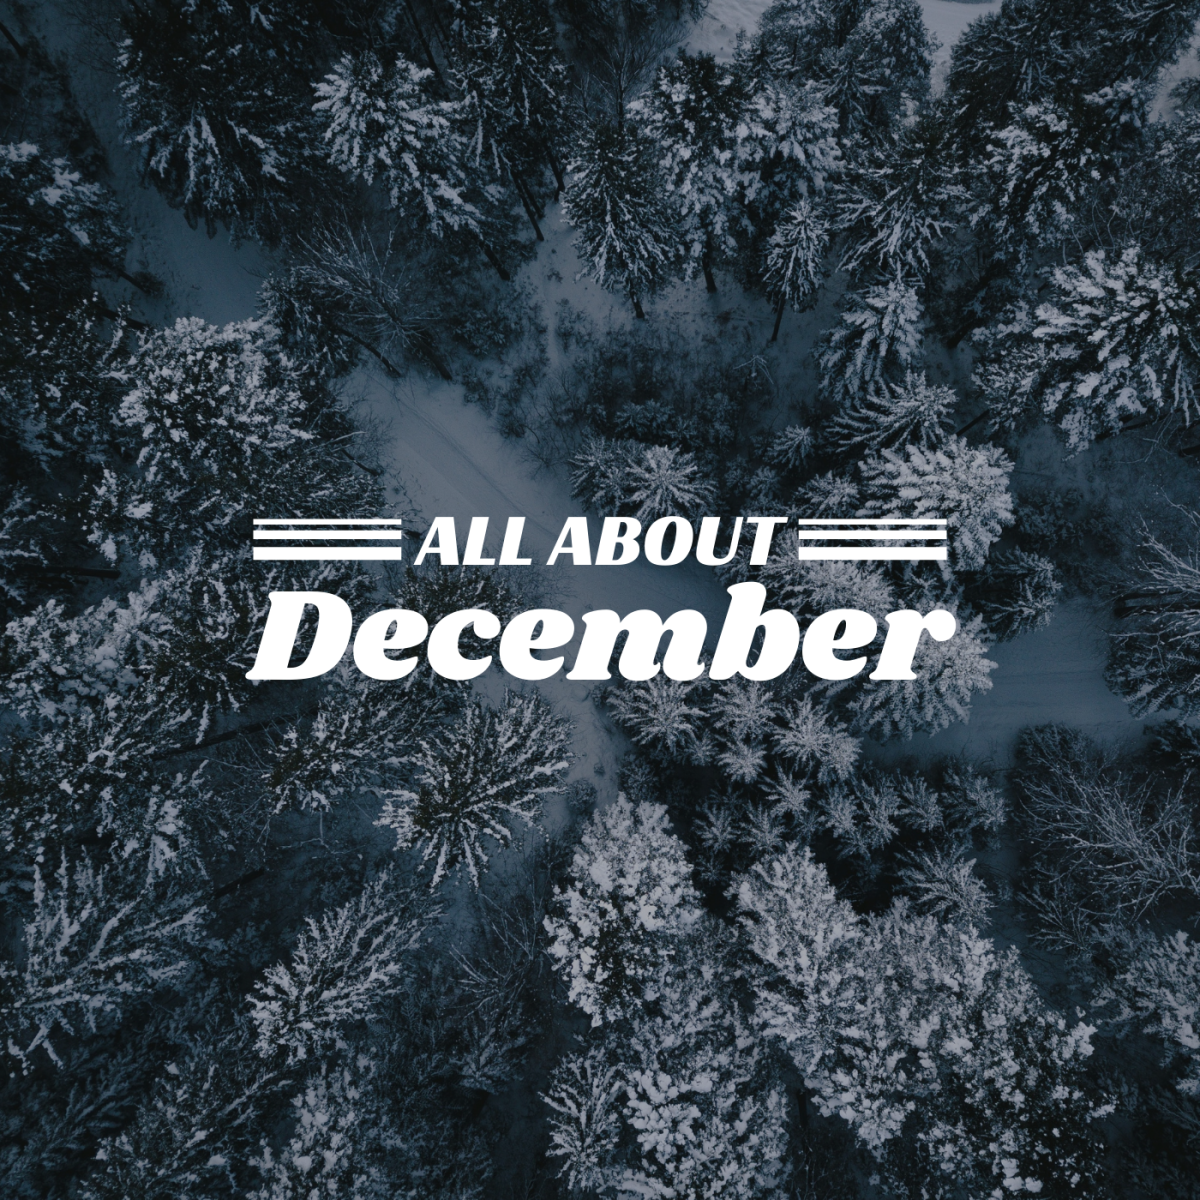 There's more to December than Christmas and New Year's Eve.